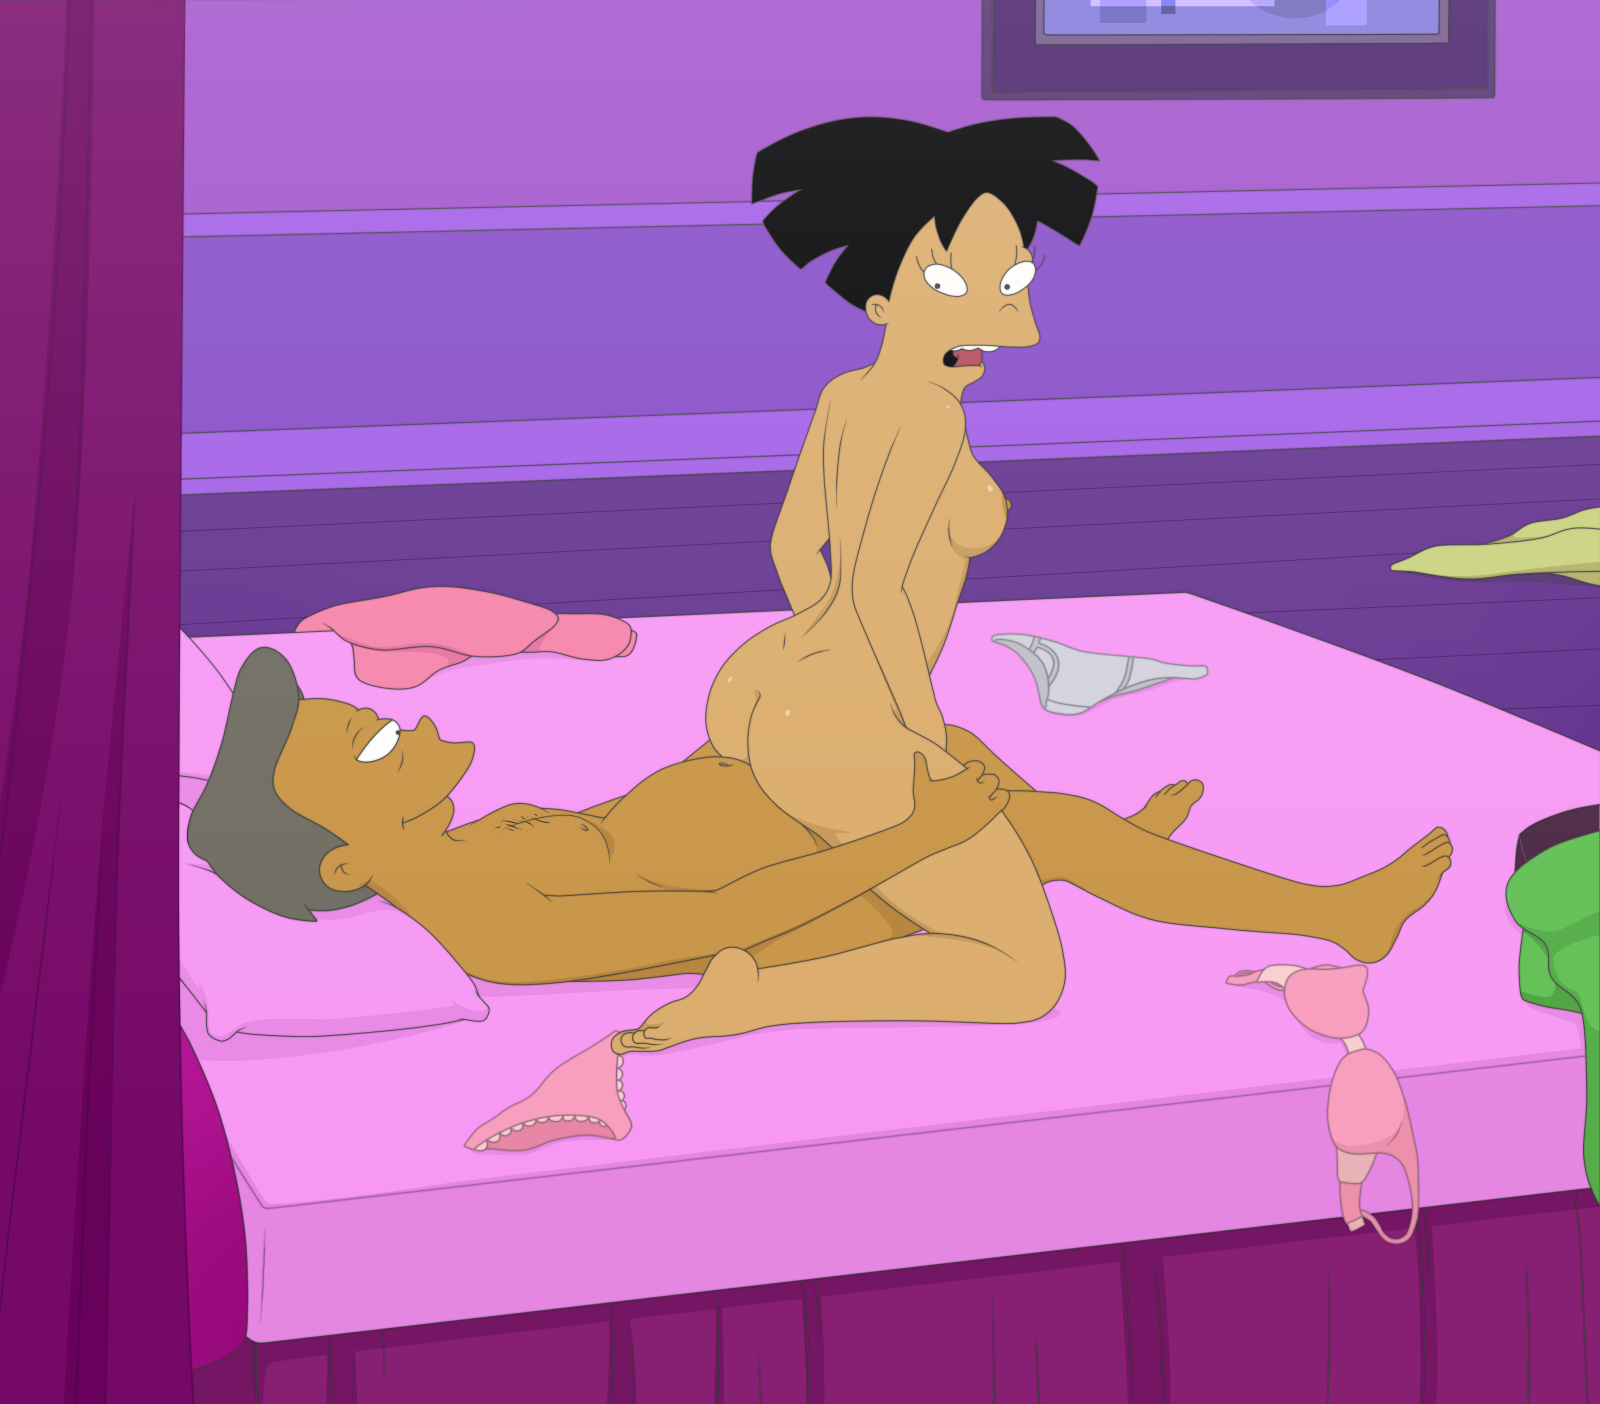 Futurama leela and amy nude are